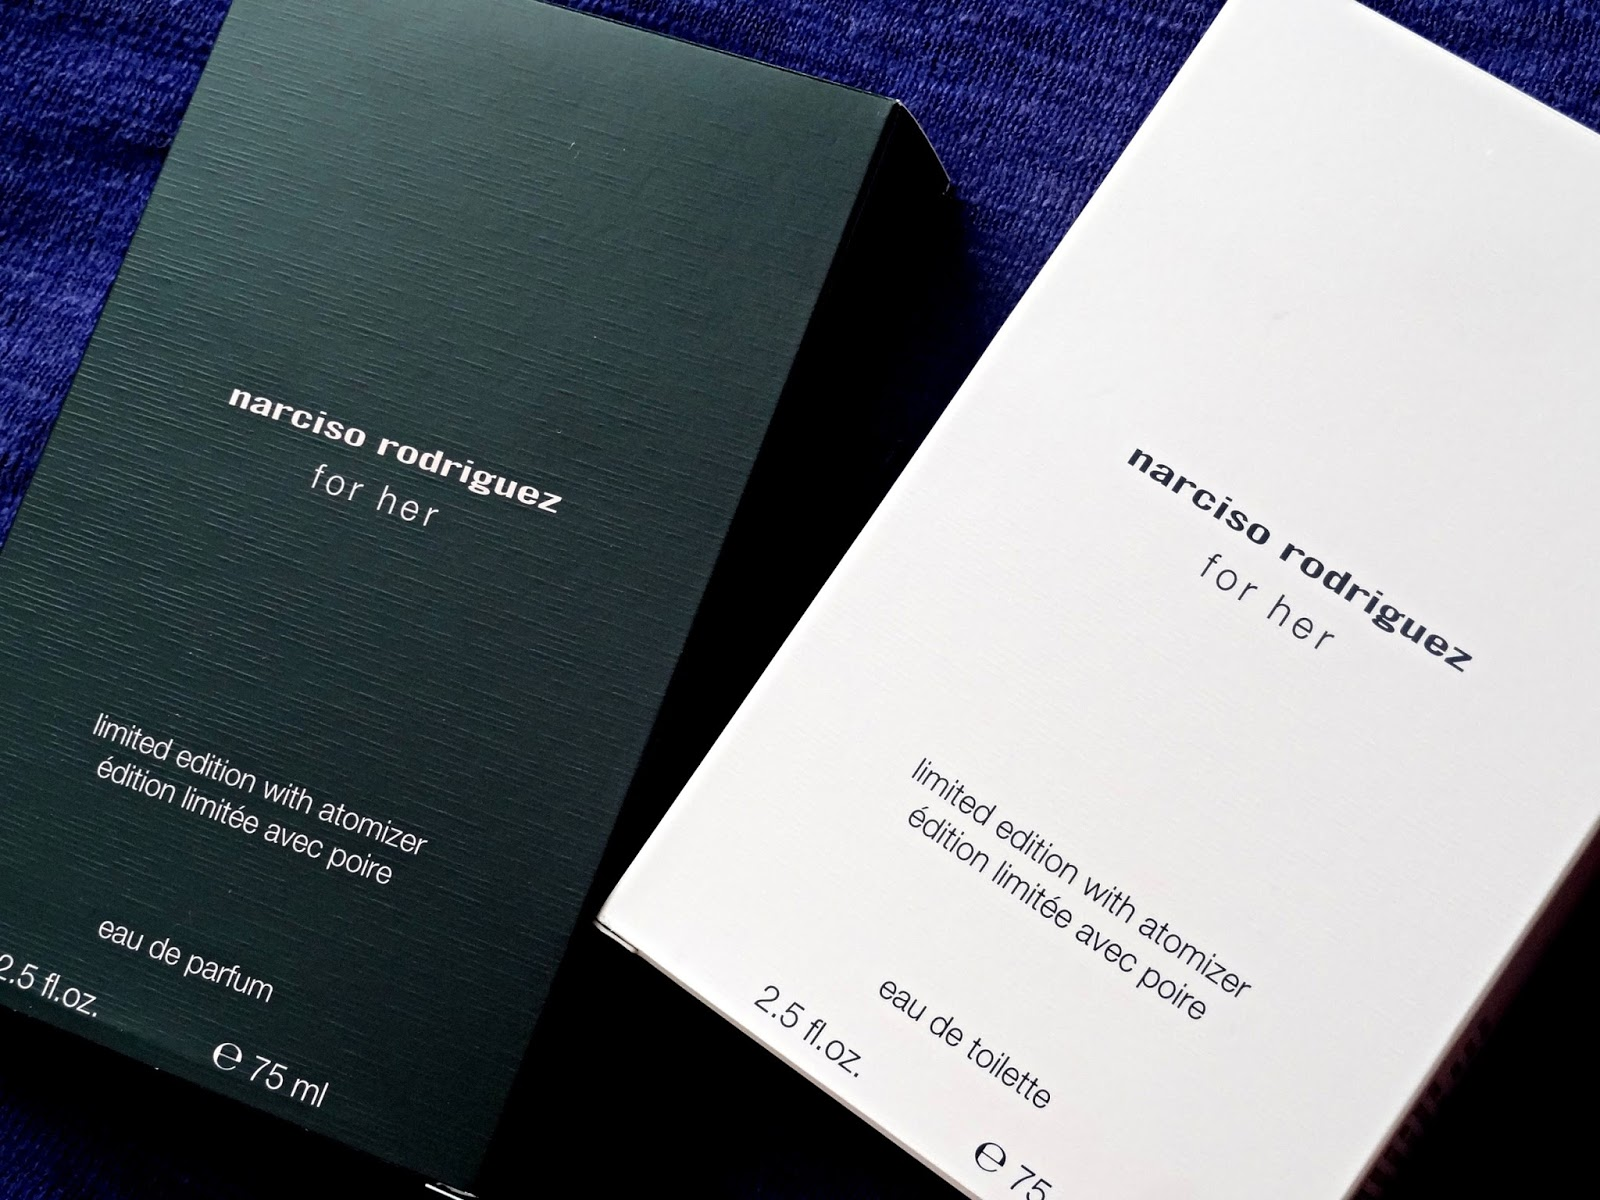 Narciso Rodriguez For Her Eau de Toilette and Eau de Parfum with Atomizer